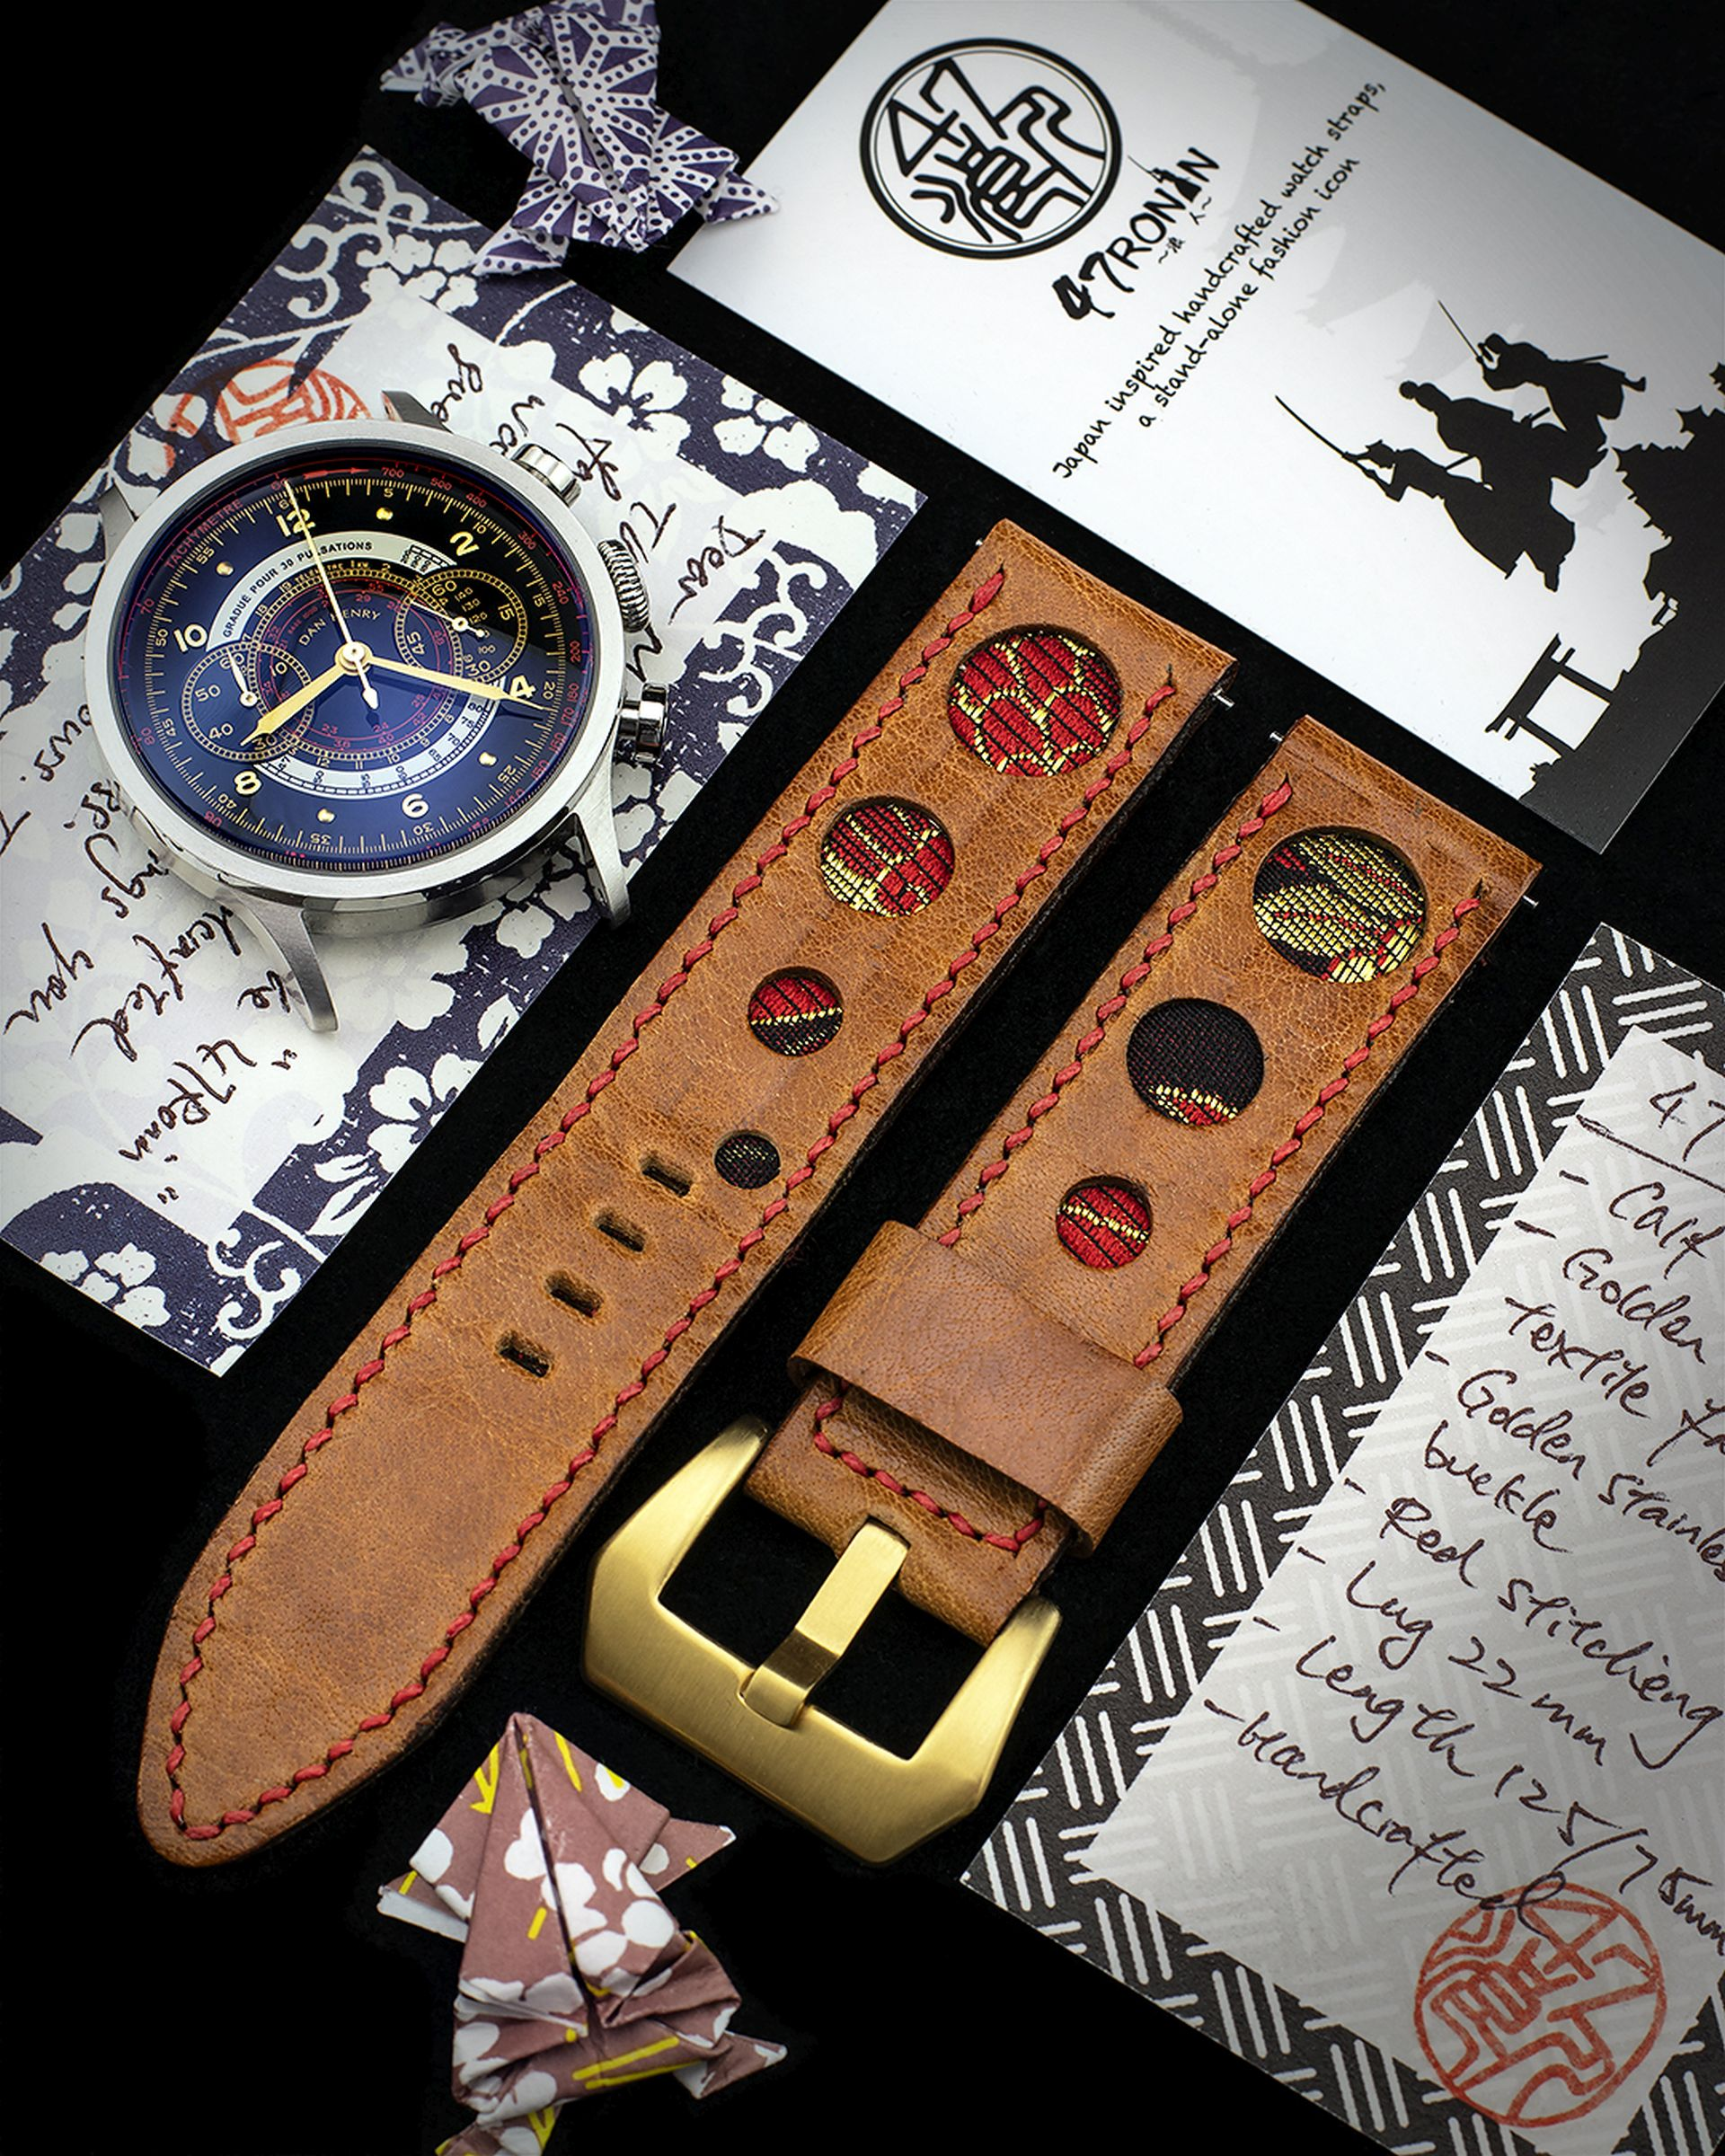 47ronin Bespoke Leather Watch Straps Handcrafted From Exotic Japanese Materials